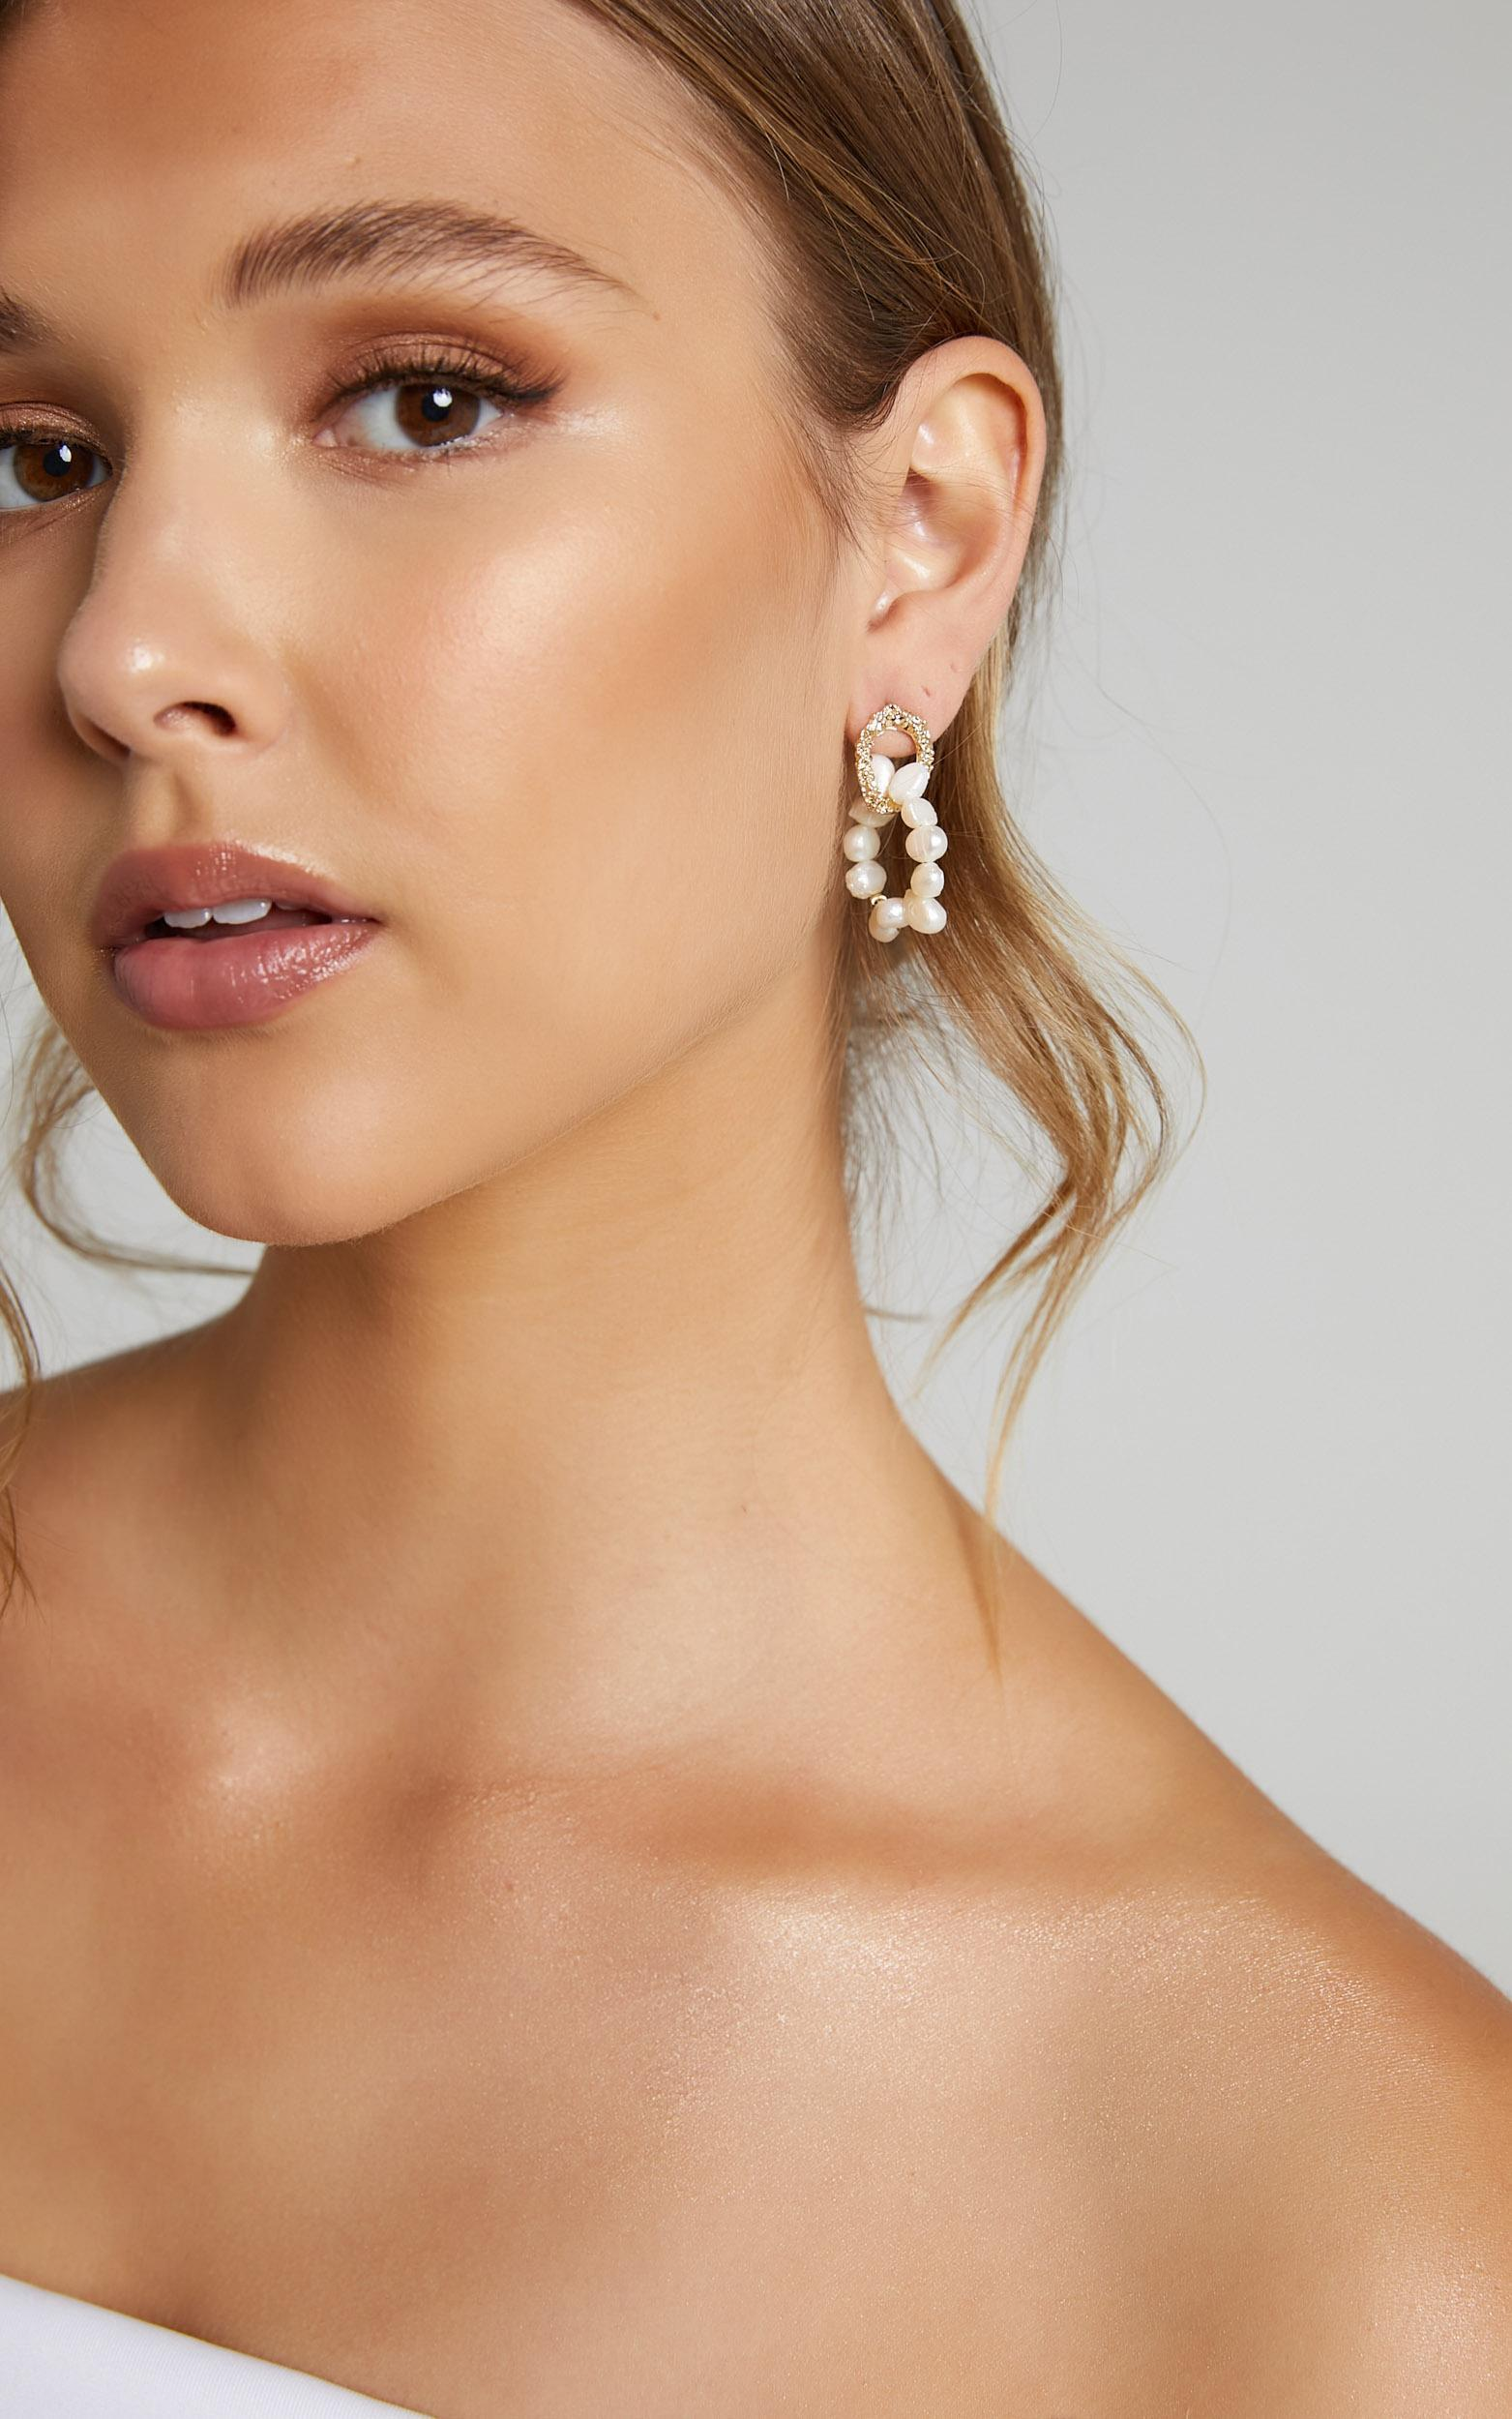 More Than Words Earrings in Pearl, , hi-res image number null